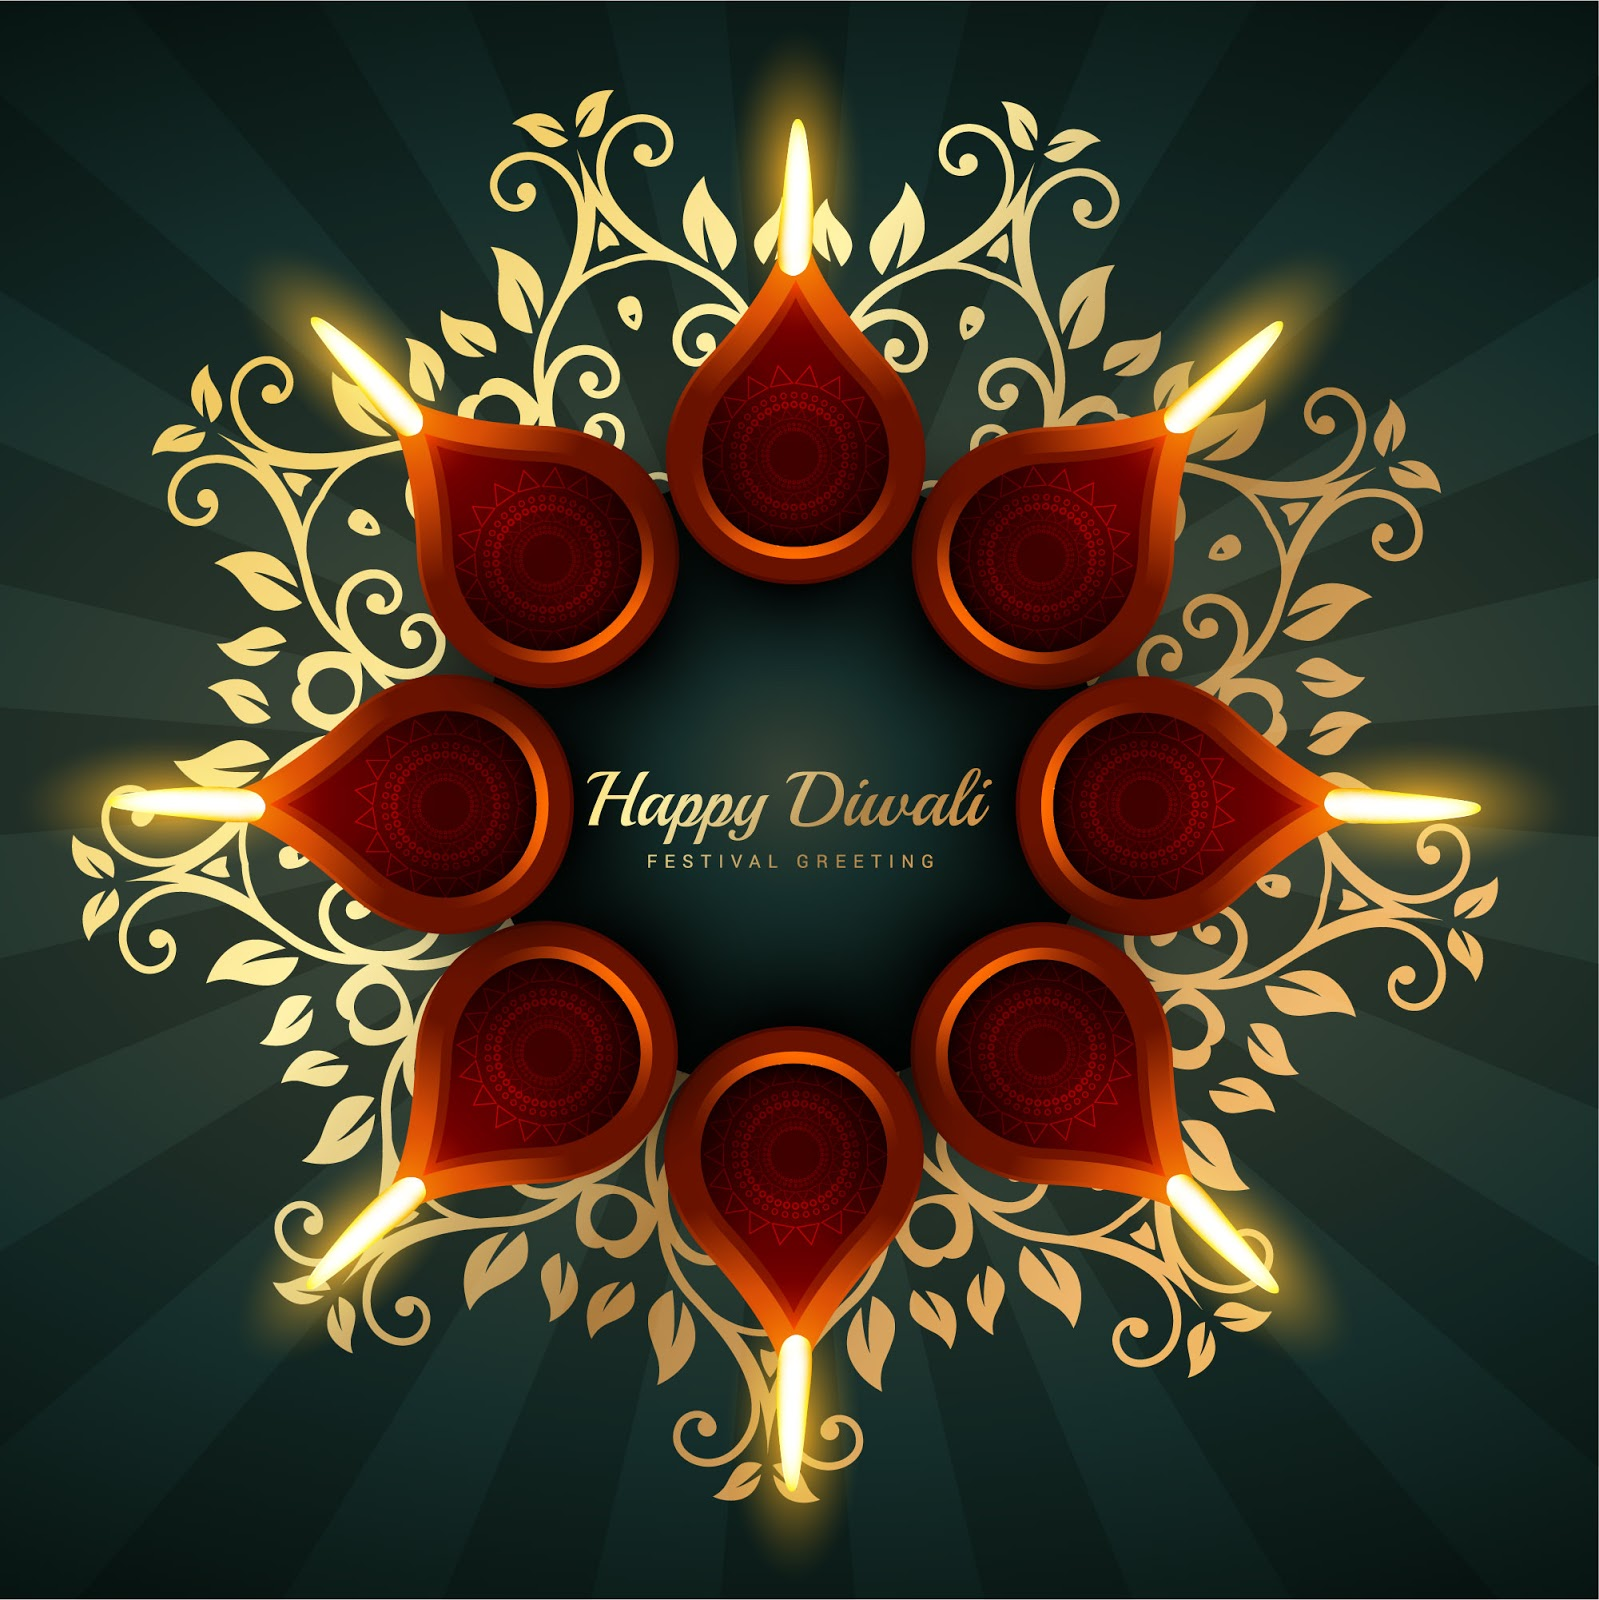 Happy diwali messages in english hindi hd quality happy diwali happy diwali messages in english hindi m4hsunfo